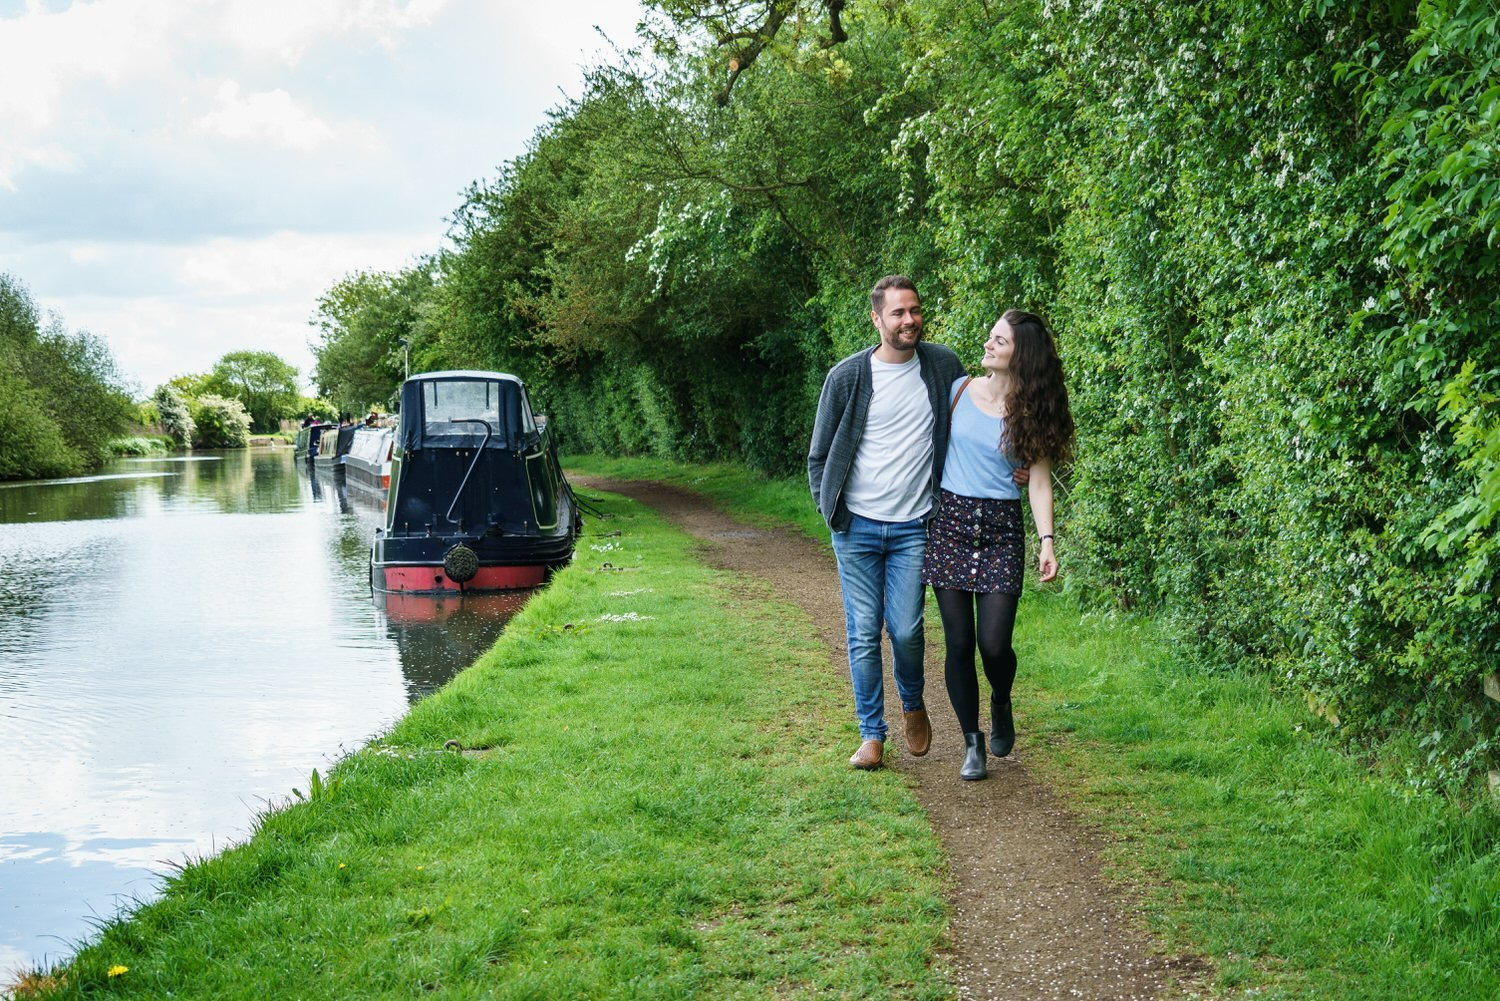 Stoke Bruerne Northamptonshire Engagement Family Photography couple walking along the tow path arms around each other looking loved up